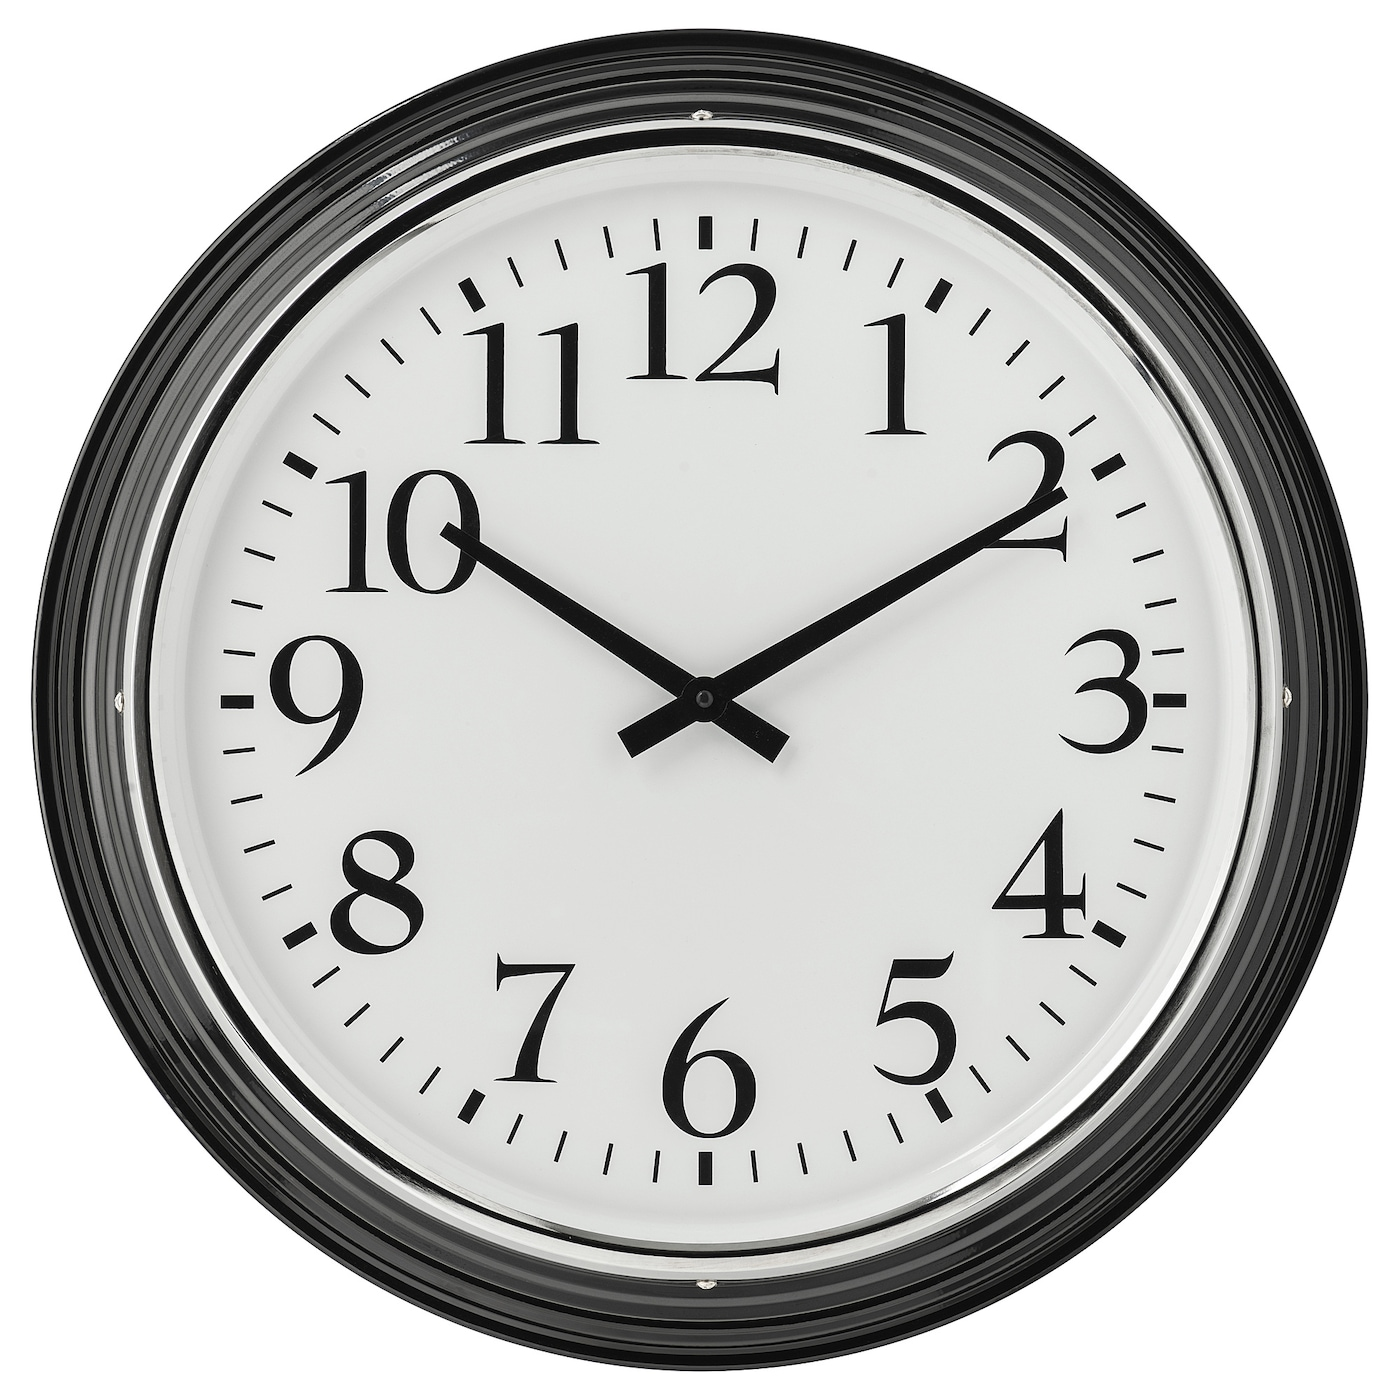 IKEA BRAVUR wall clock Highly accurate at keeping time as it is fitted with a quartz movement.